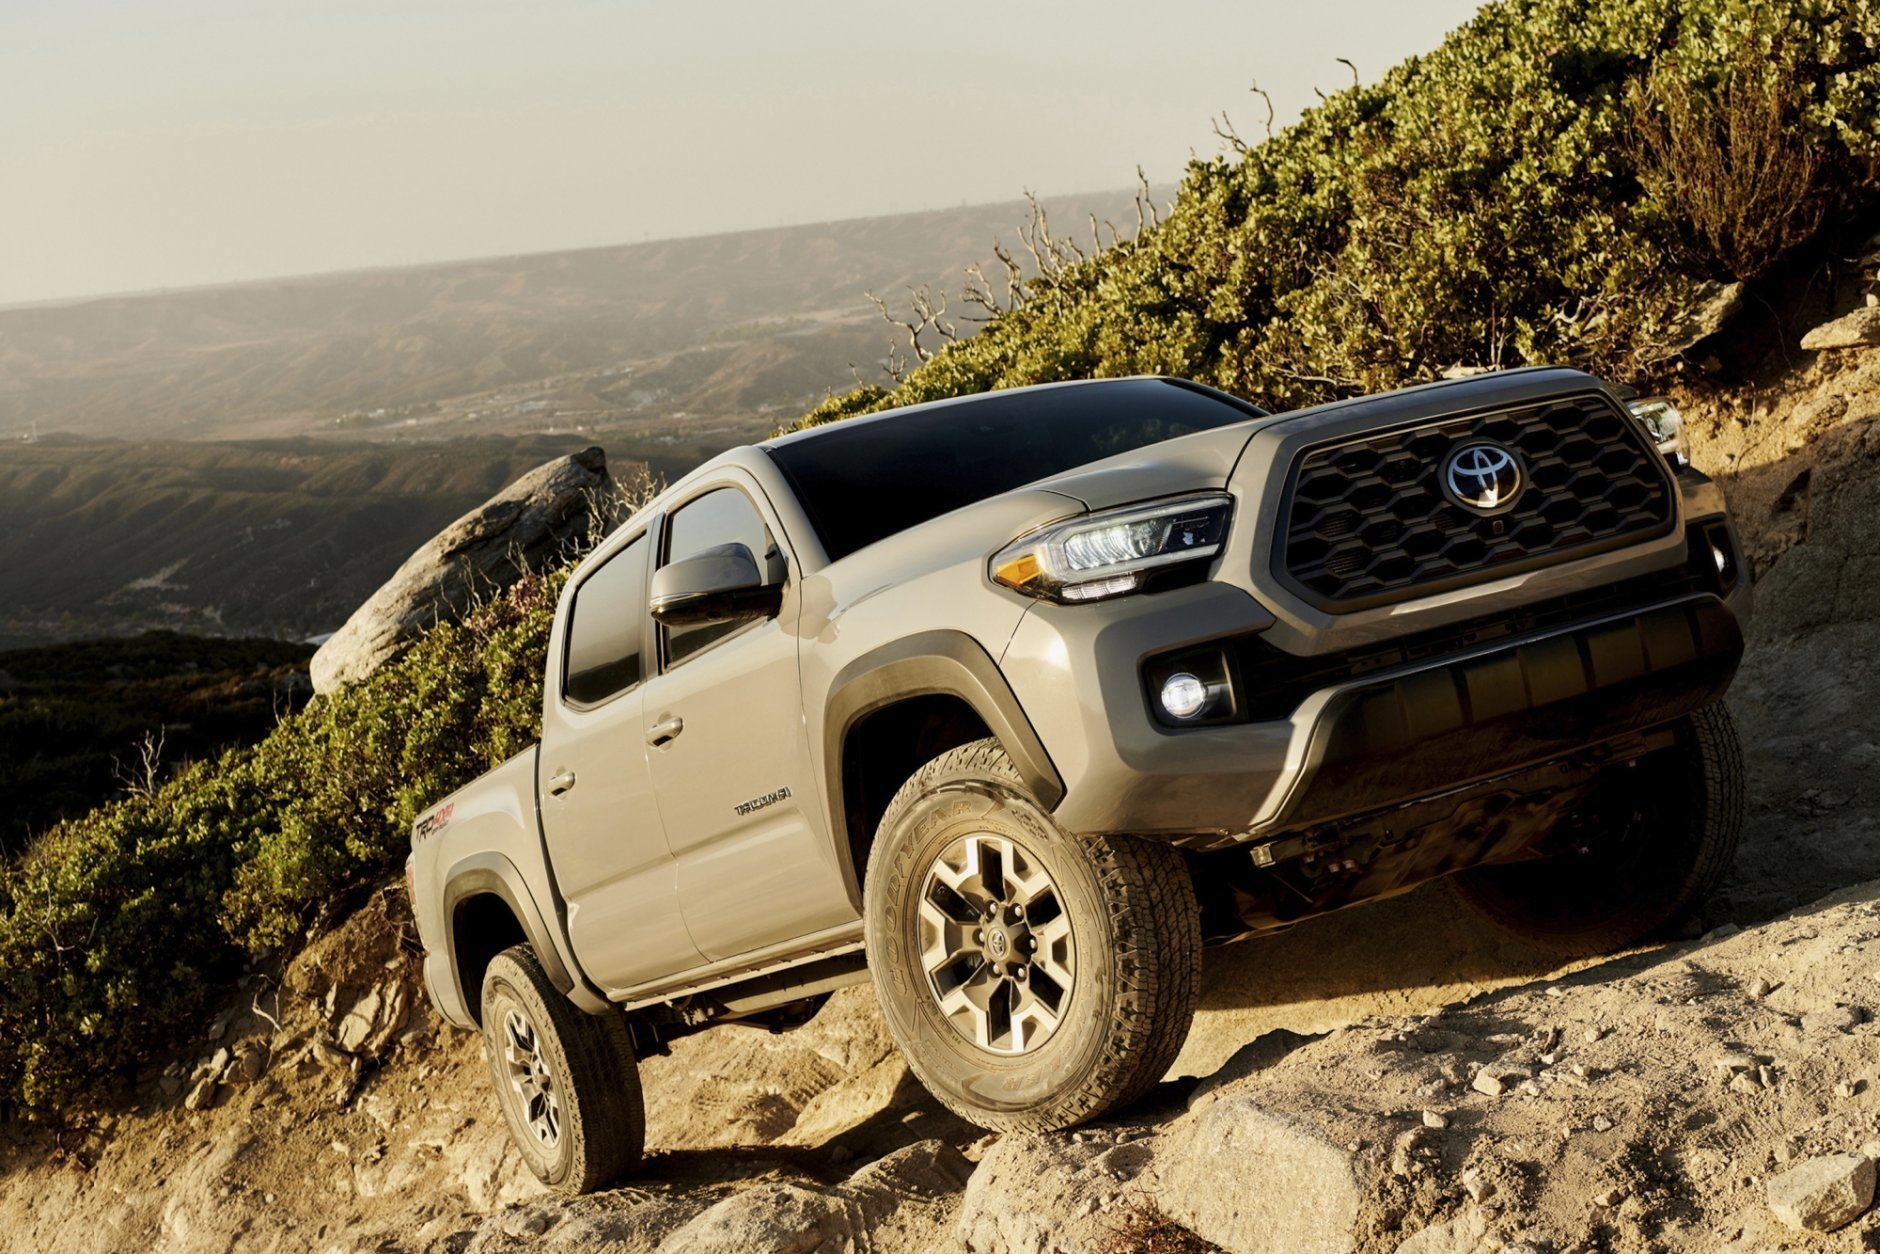 This photo undated provided by Toyota shows the Toyota Tacoma TRD Off-Road, an example of a truck equipped with an off-road package. The TRD Off-Road trim level includes upgraded hardware and software to enhance its abilities in varying terrain. Some comfort-related features are also included. (Chris Delorenzo/Toyota Motor Sales U.S.A. via AP)